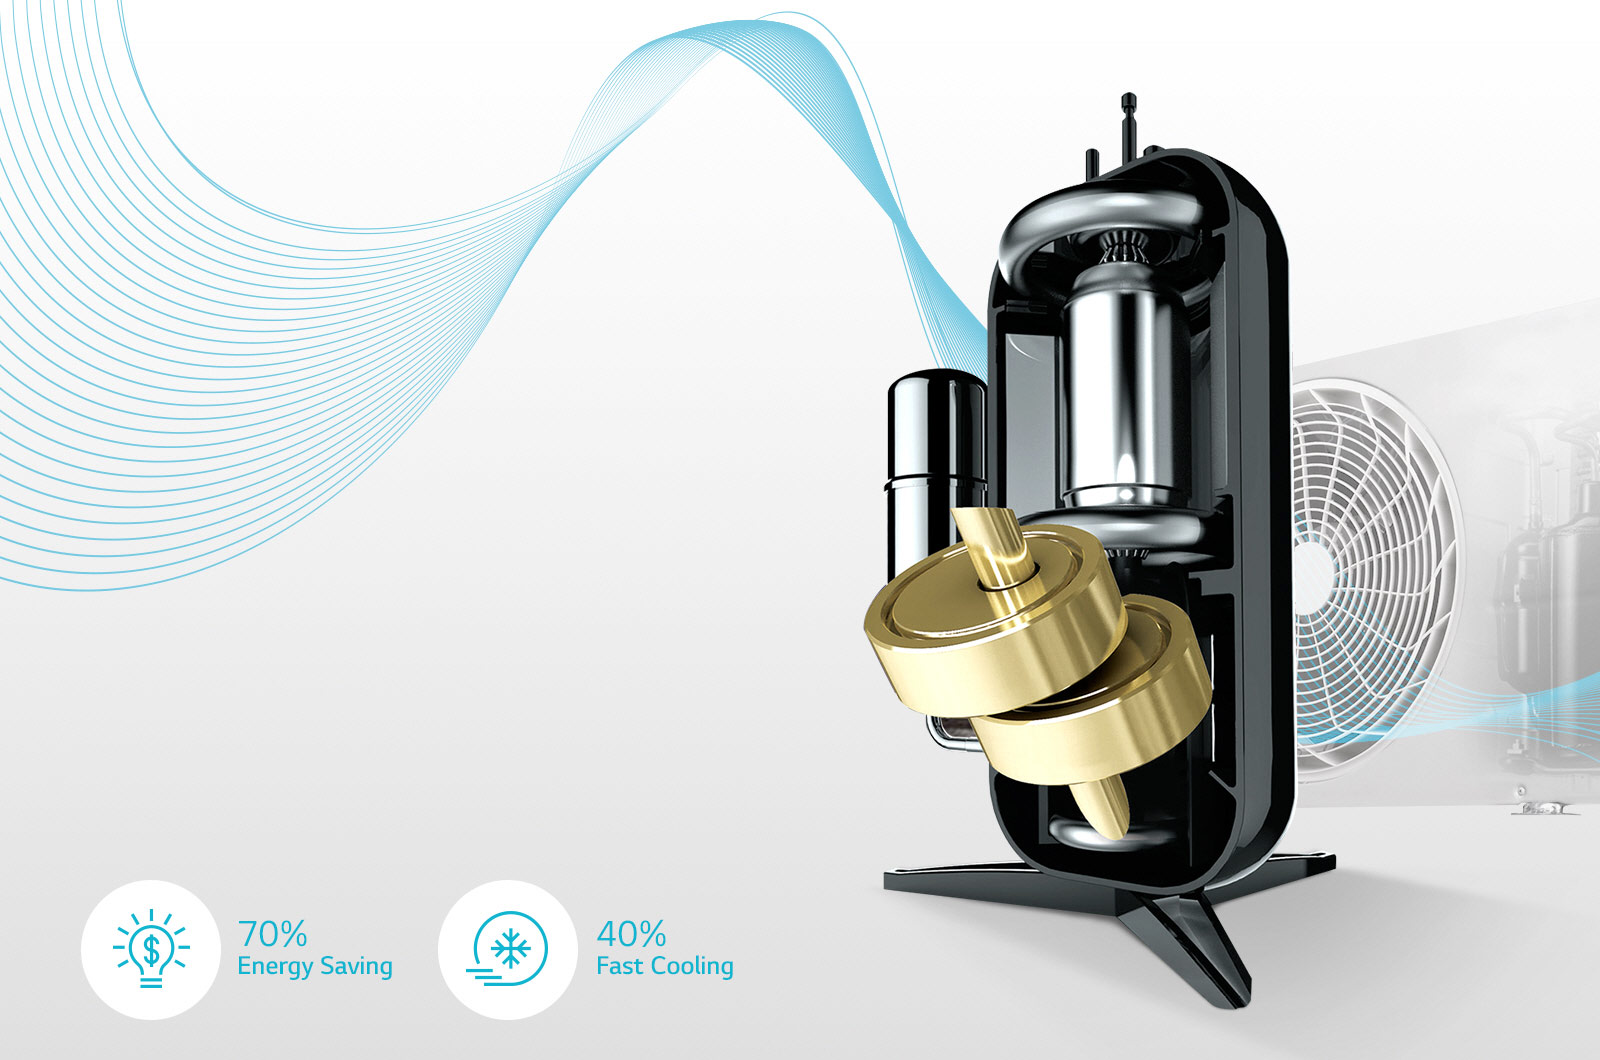 DUAL INVERTER COMPRESSOR™ WITH 10 YEAR WARRANTY3